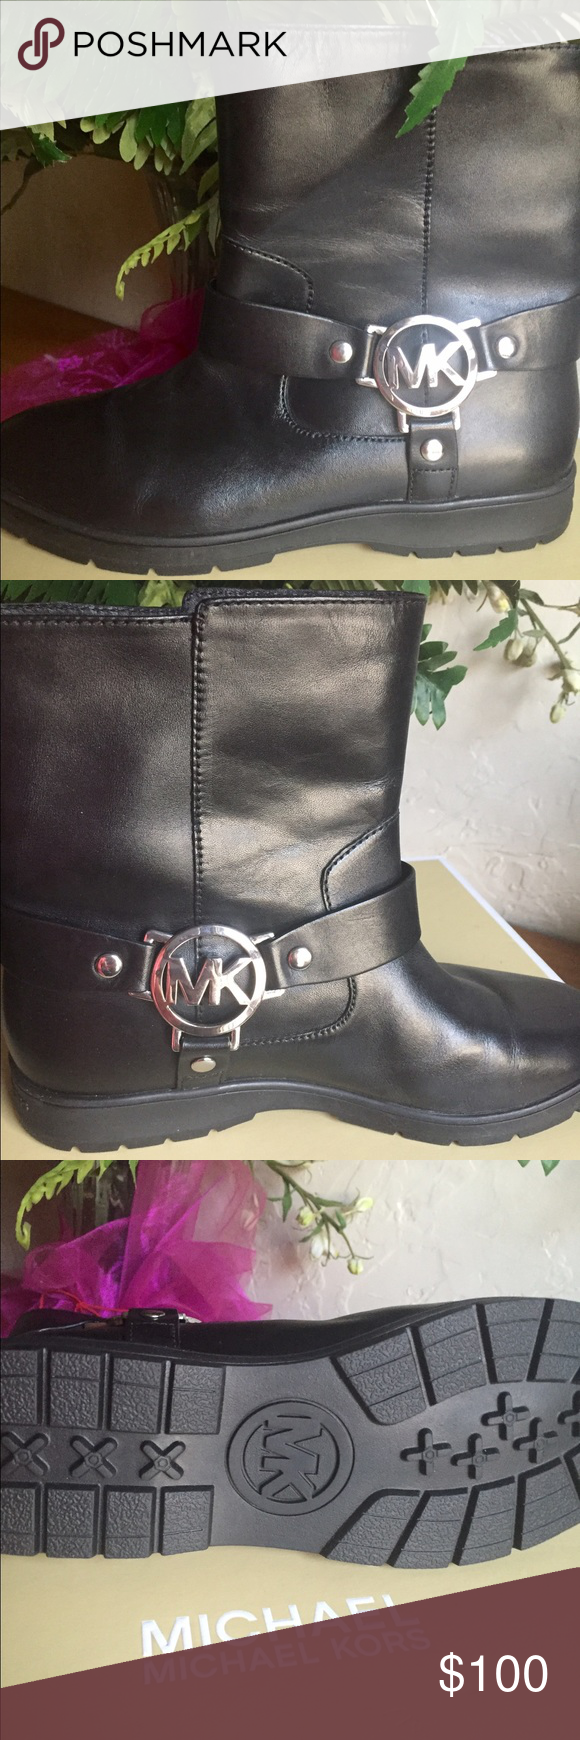 ♦️New♦️Michael Kors ankle boots! Black leather ankle boots with silver logo on both sides! Brand new! Michael Kors Shoes Ankle Boots & Booties